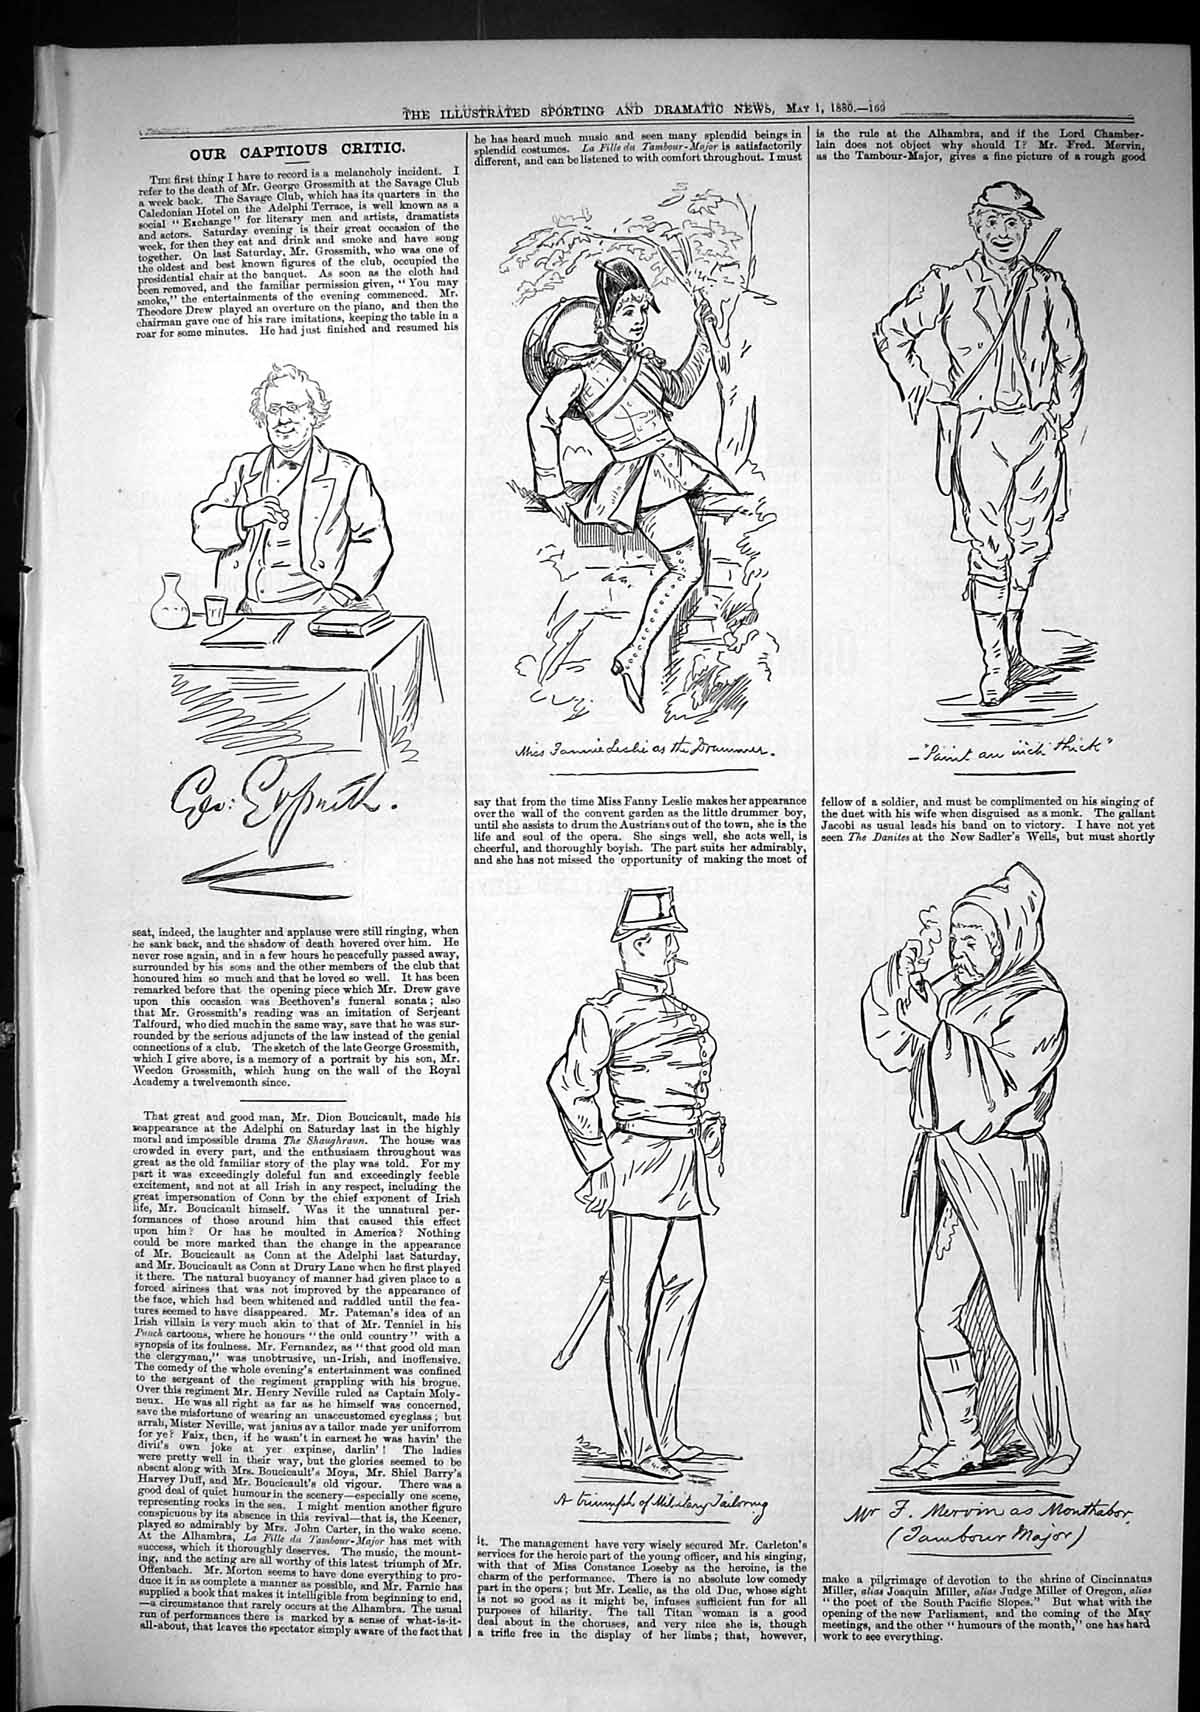 Old-Sporting-Dramatic-News-1880-Captious-Critic-Theatre-Military-Drum-Victorian